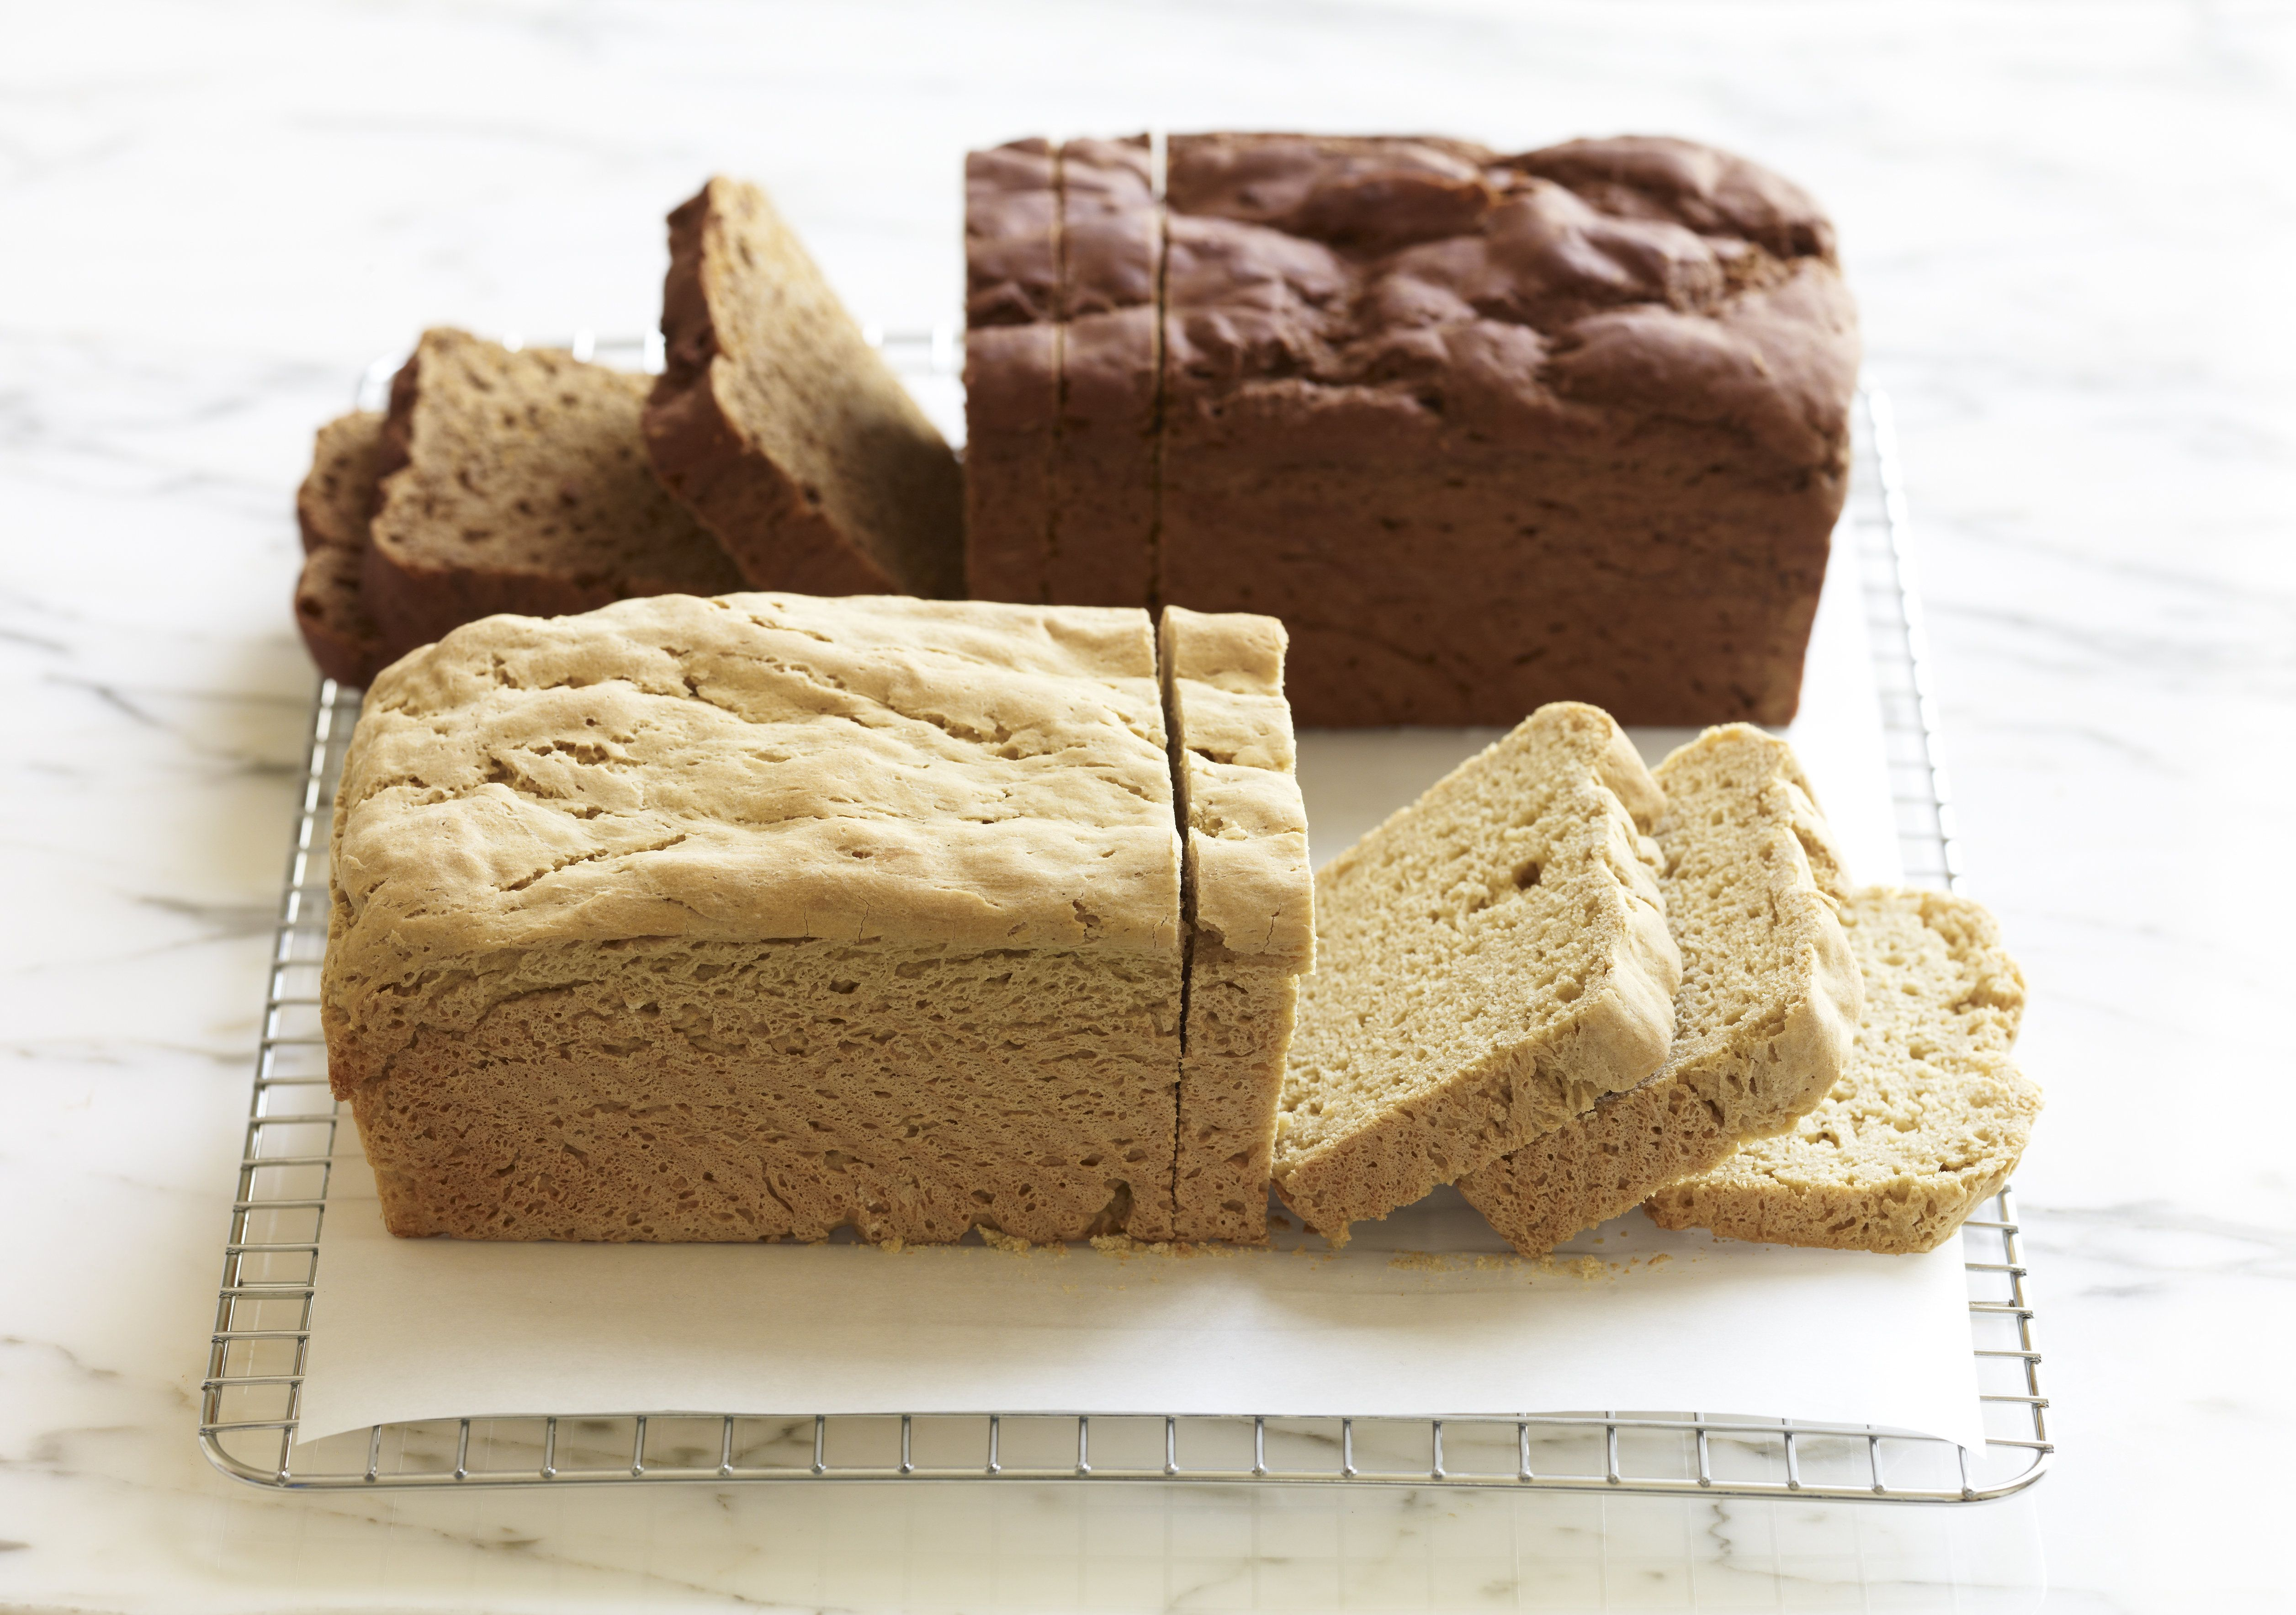 Gluten-Free Diets Are 'Not Healthier' If You Don't Have Coeliac Disease, Doctors